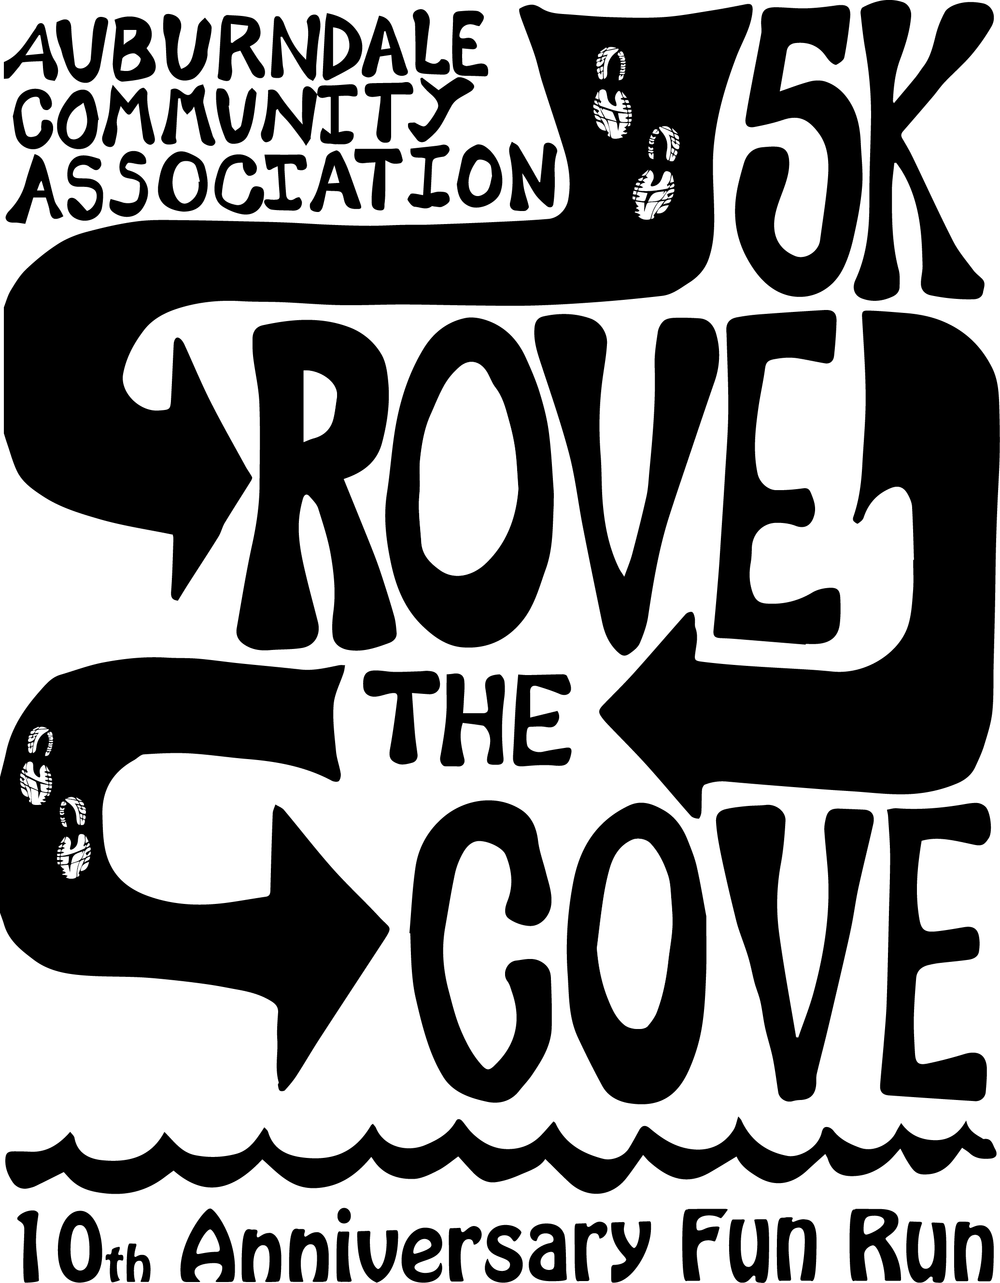 ROVE THE COVE  This is a design that I created for a local road race that wanted a graphic to put on their tee shirts as well as other collateral.